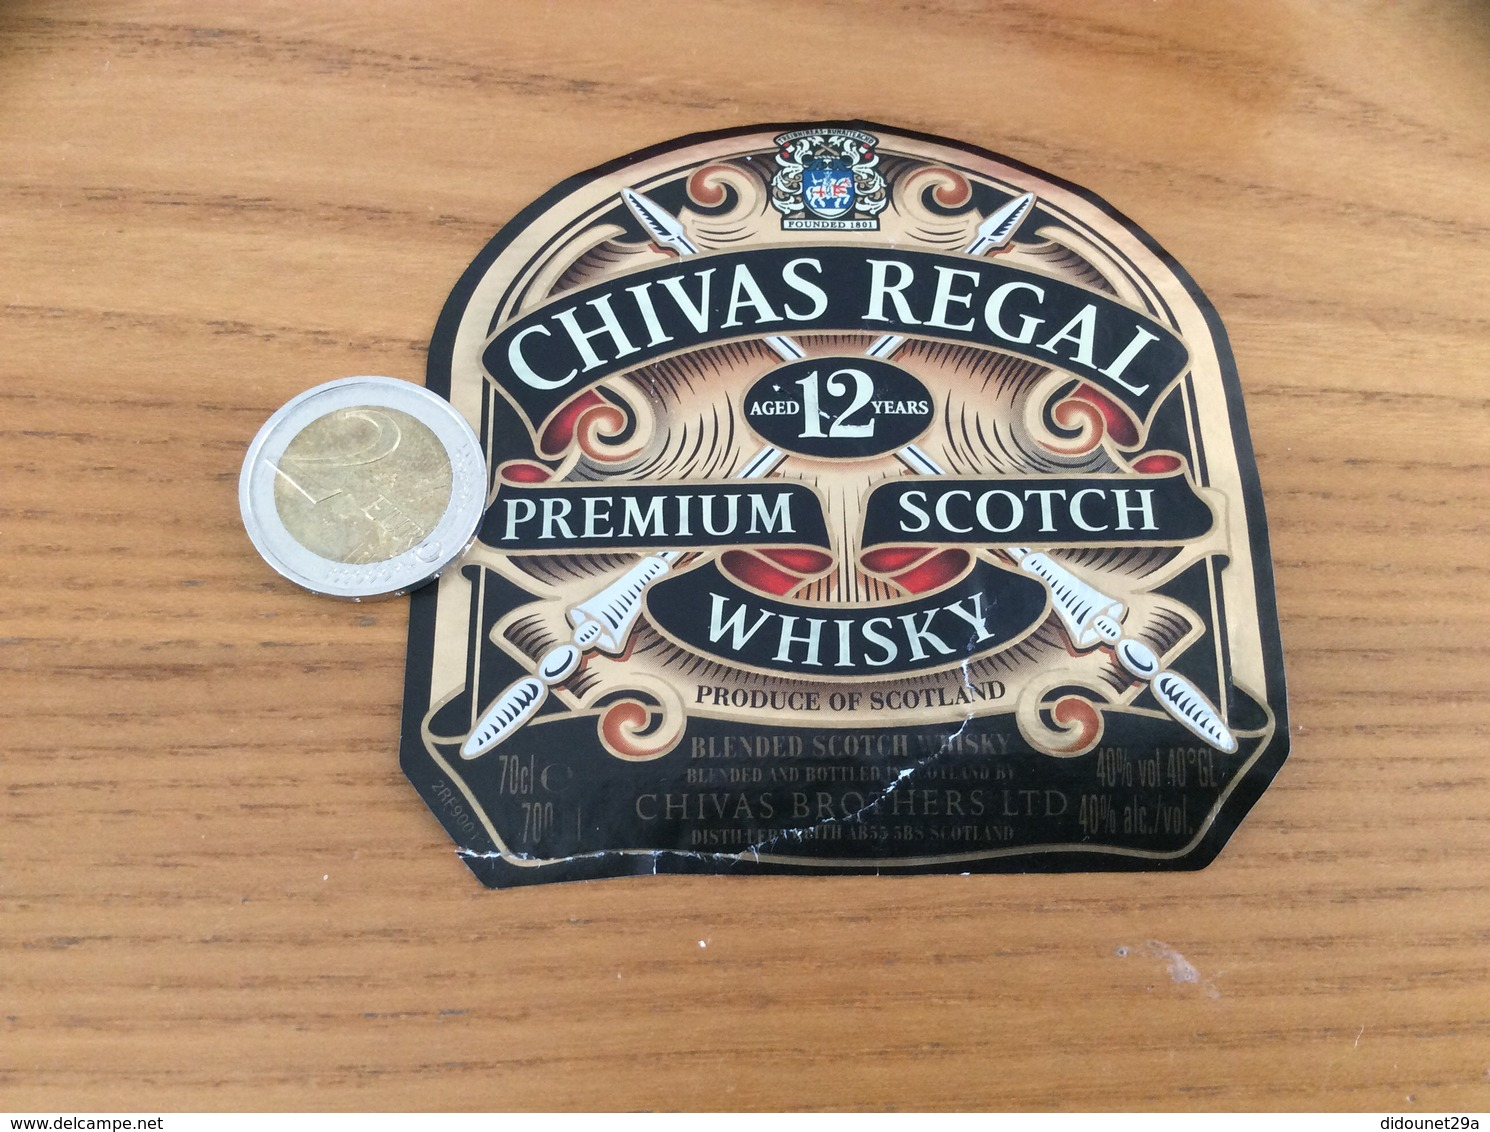 Etiquette «SCOTCH WHISKY - CHIVAS REGAL - Aged 12 Years» - Whisky